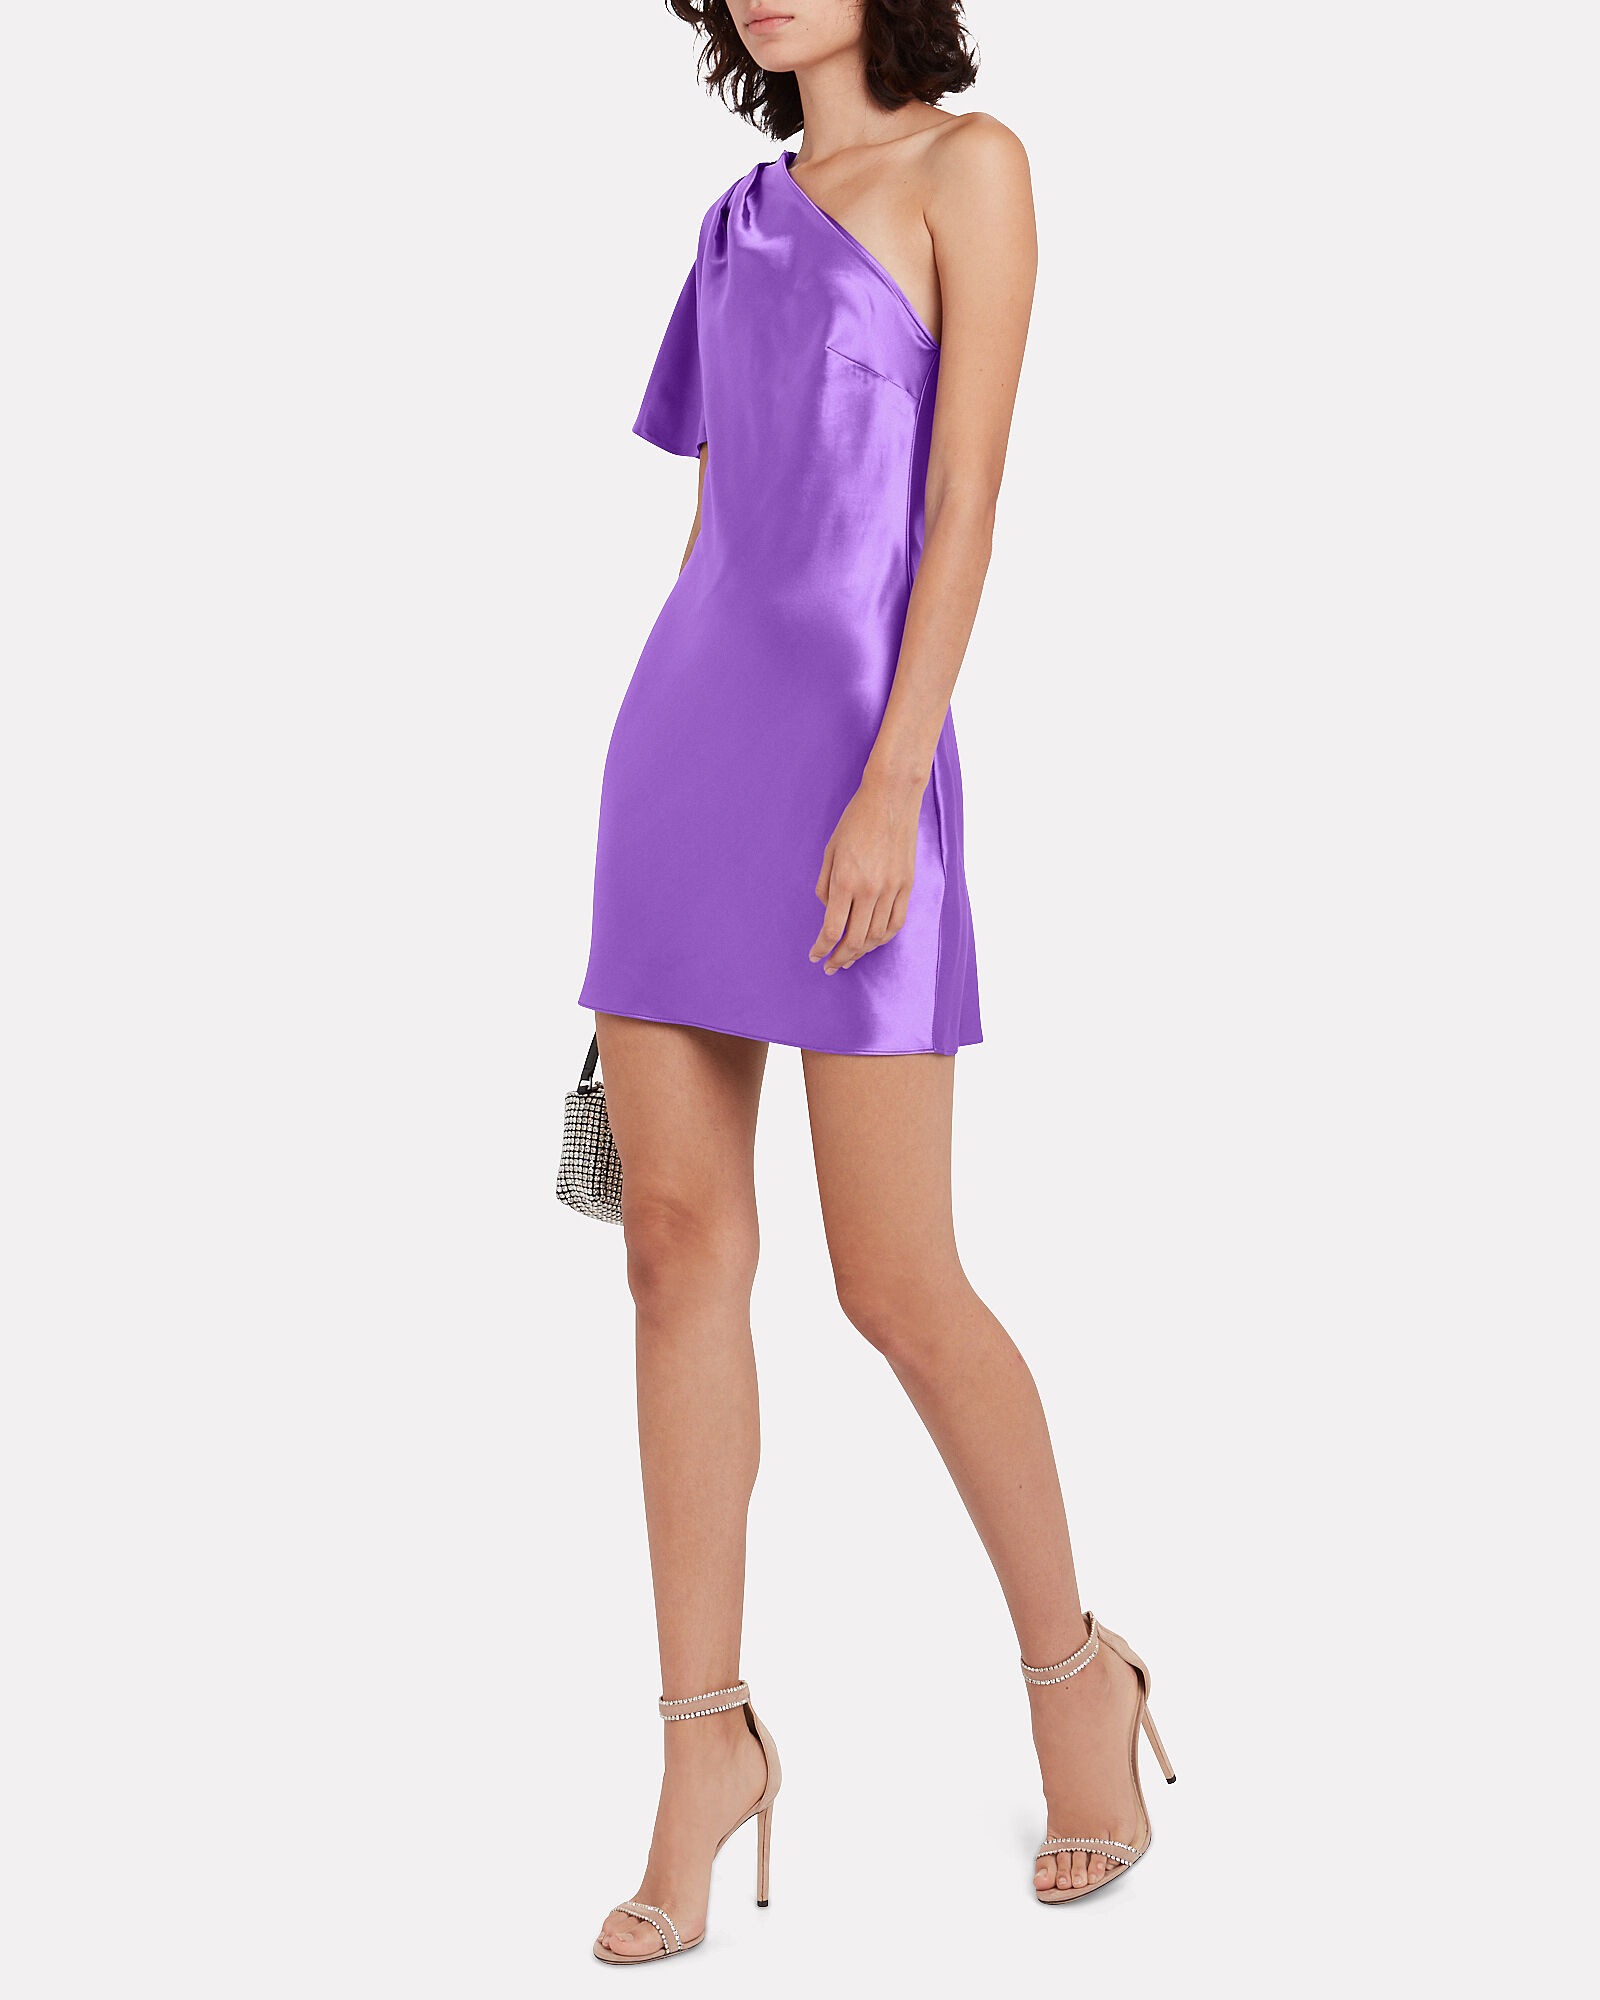 Satin Pleated One-Shoulder Mini Dress, PURPLE, hi-res